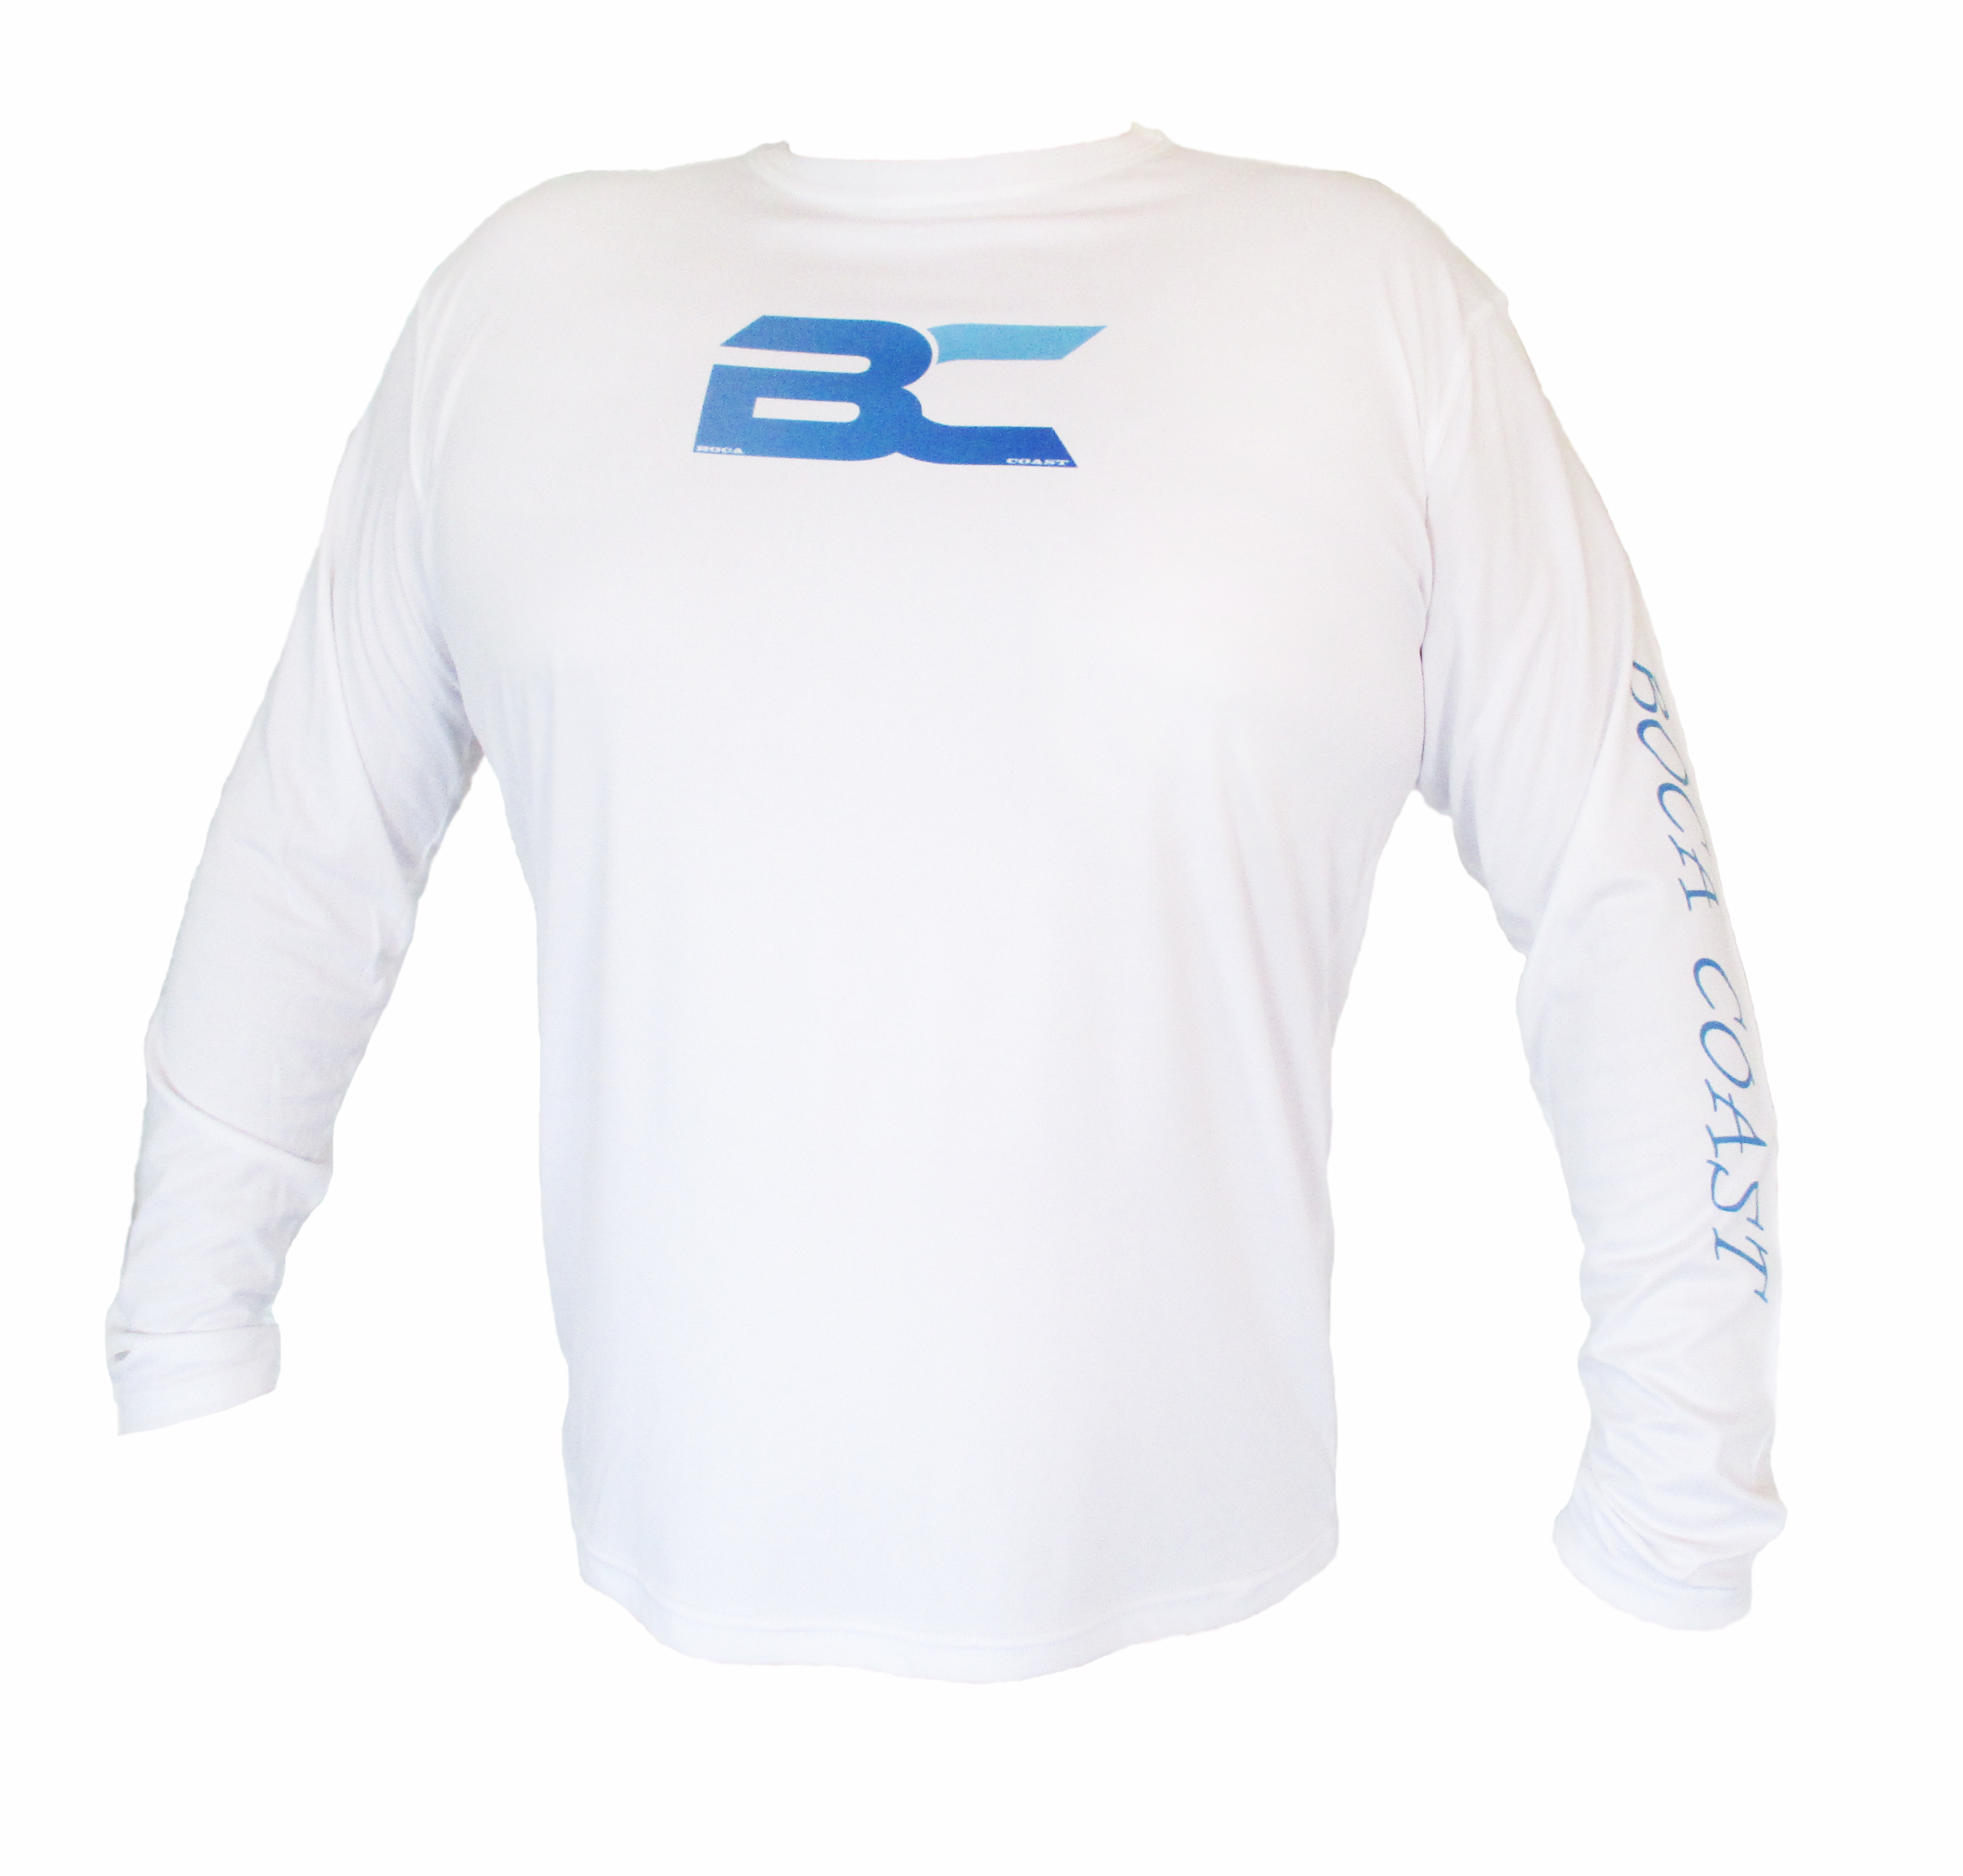 BC long sleeve fishing performance shirt